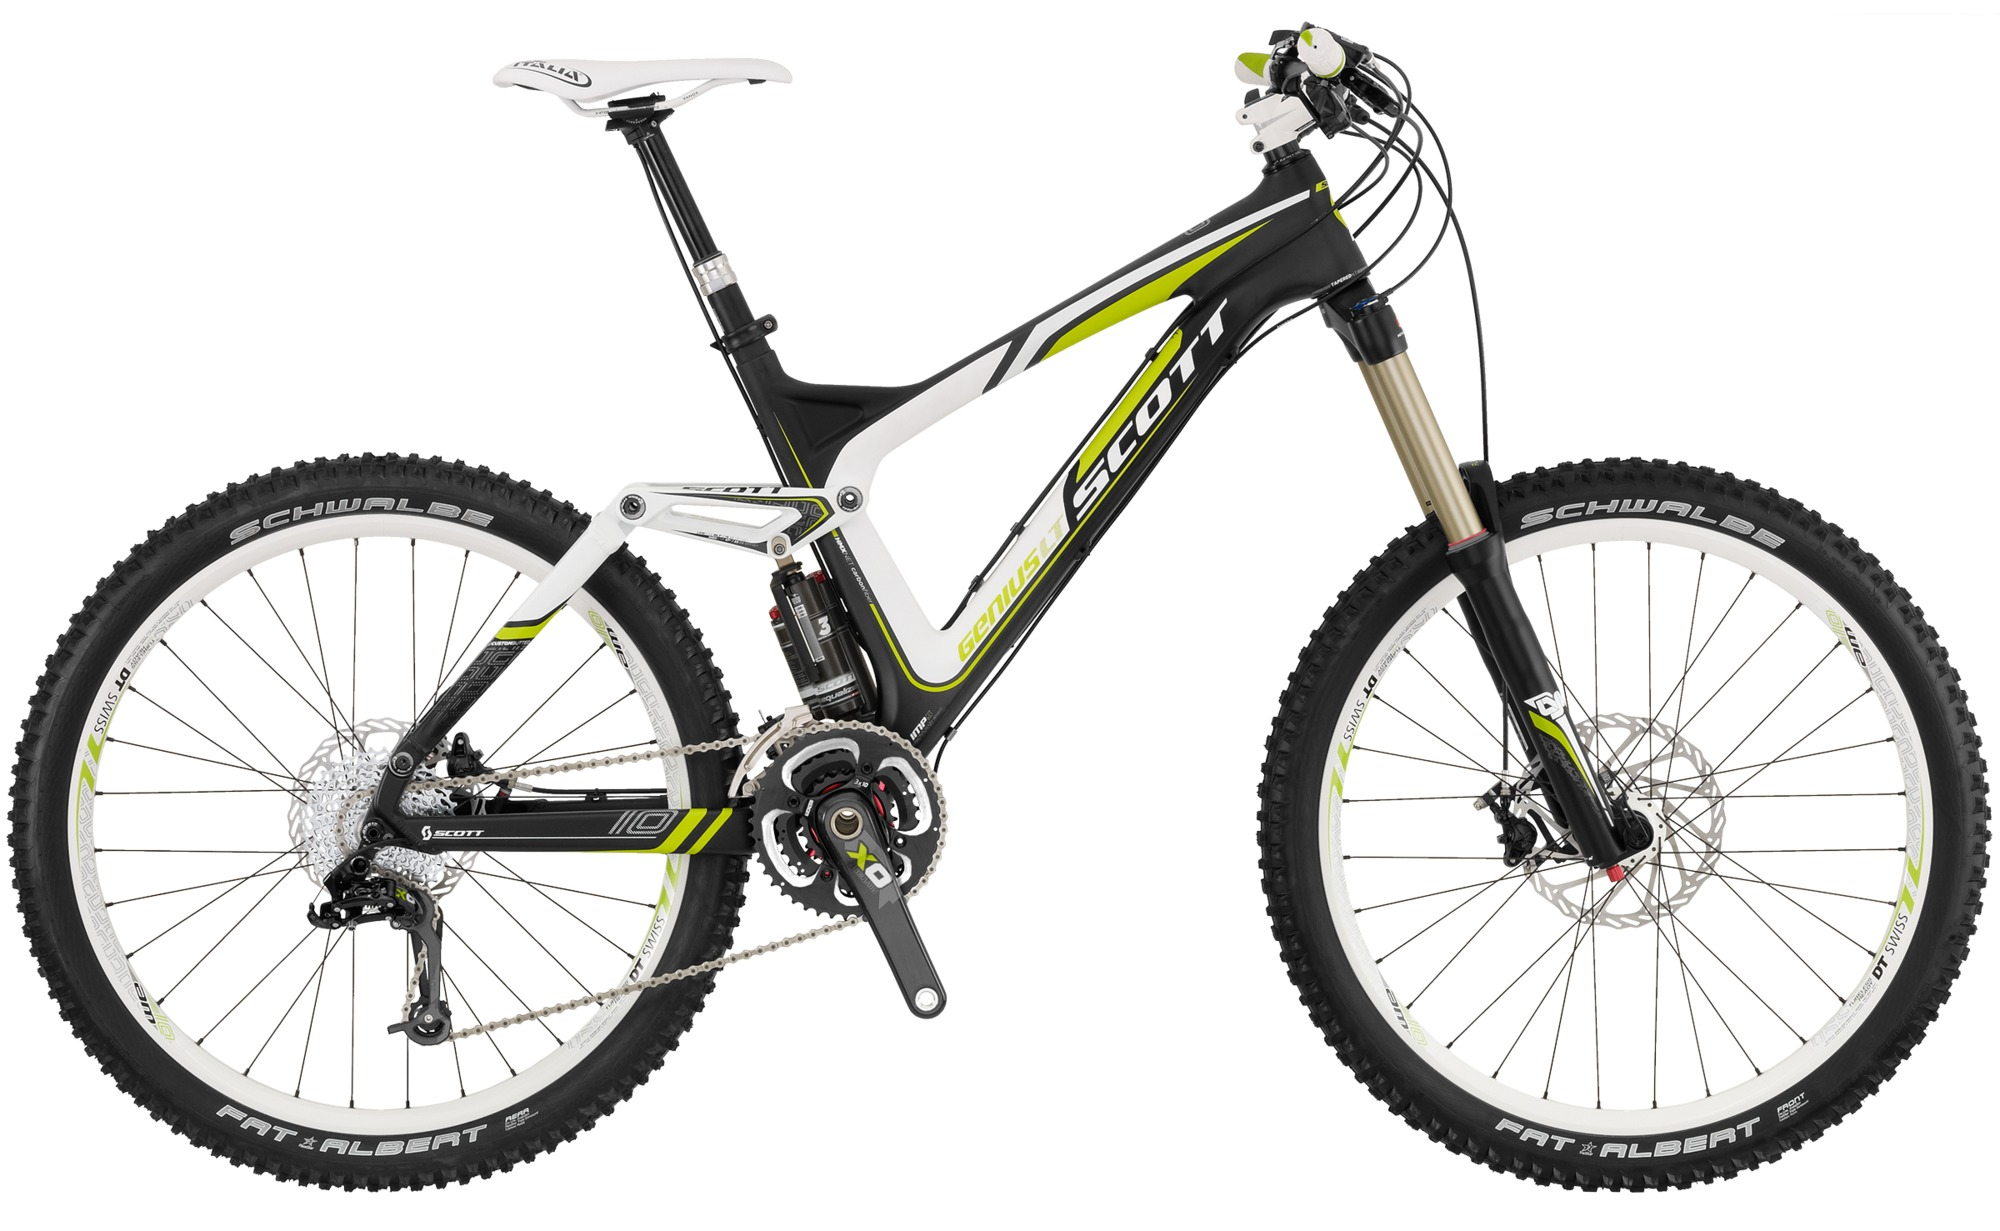 scott genius lt 10 carbon adjustable long travel mountain bike